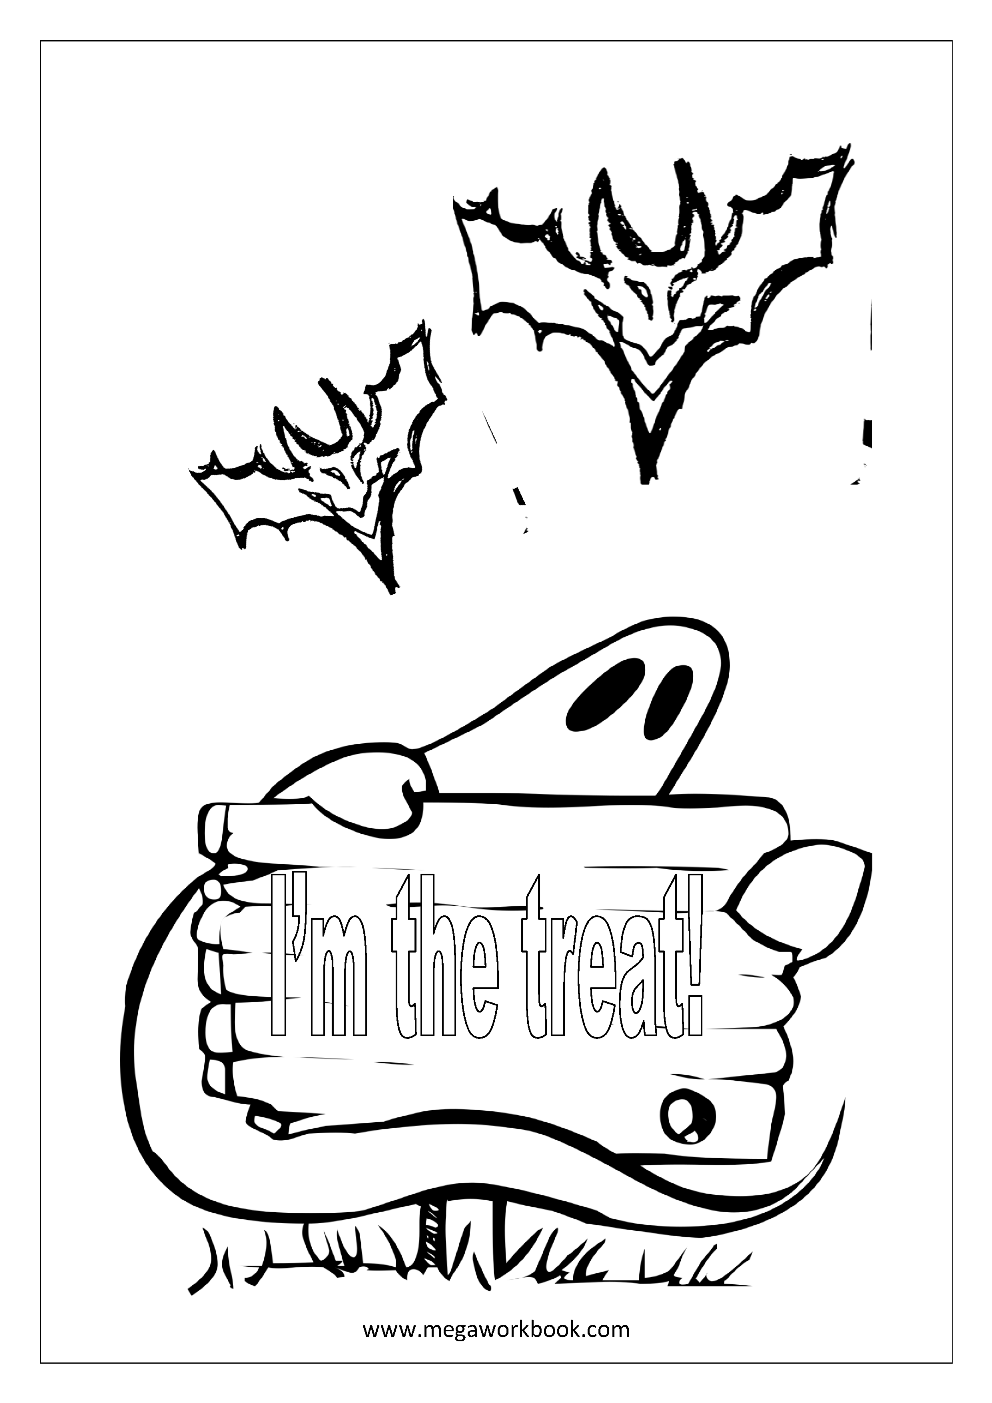 Free Coloring Sheets - Halloween - MegaWorkbook